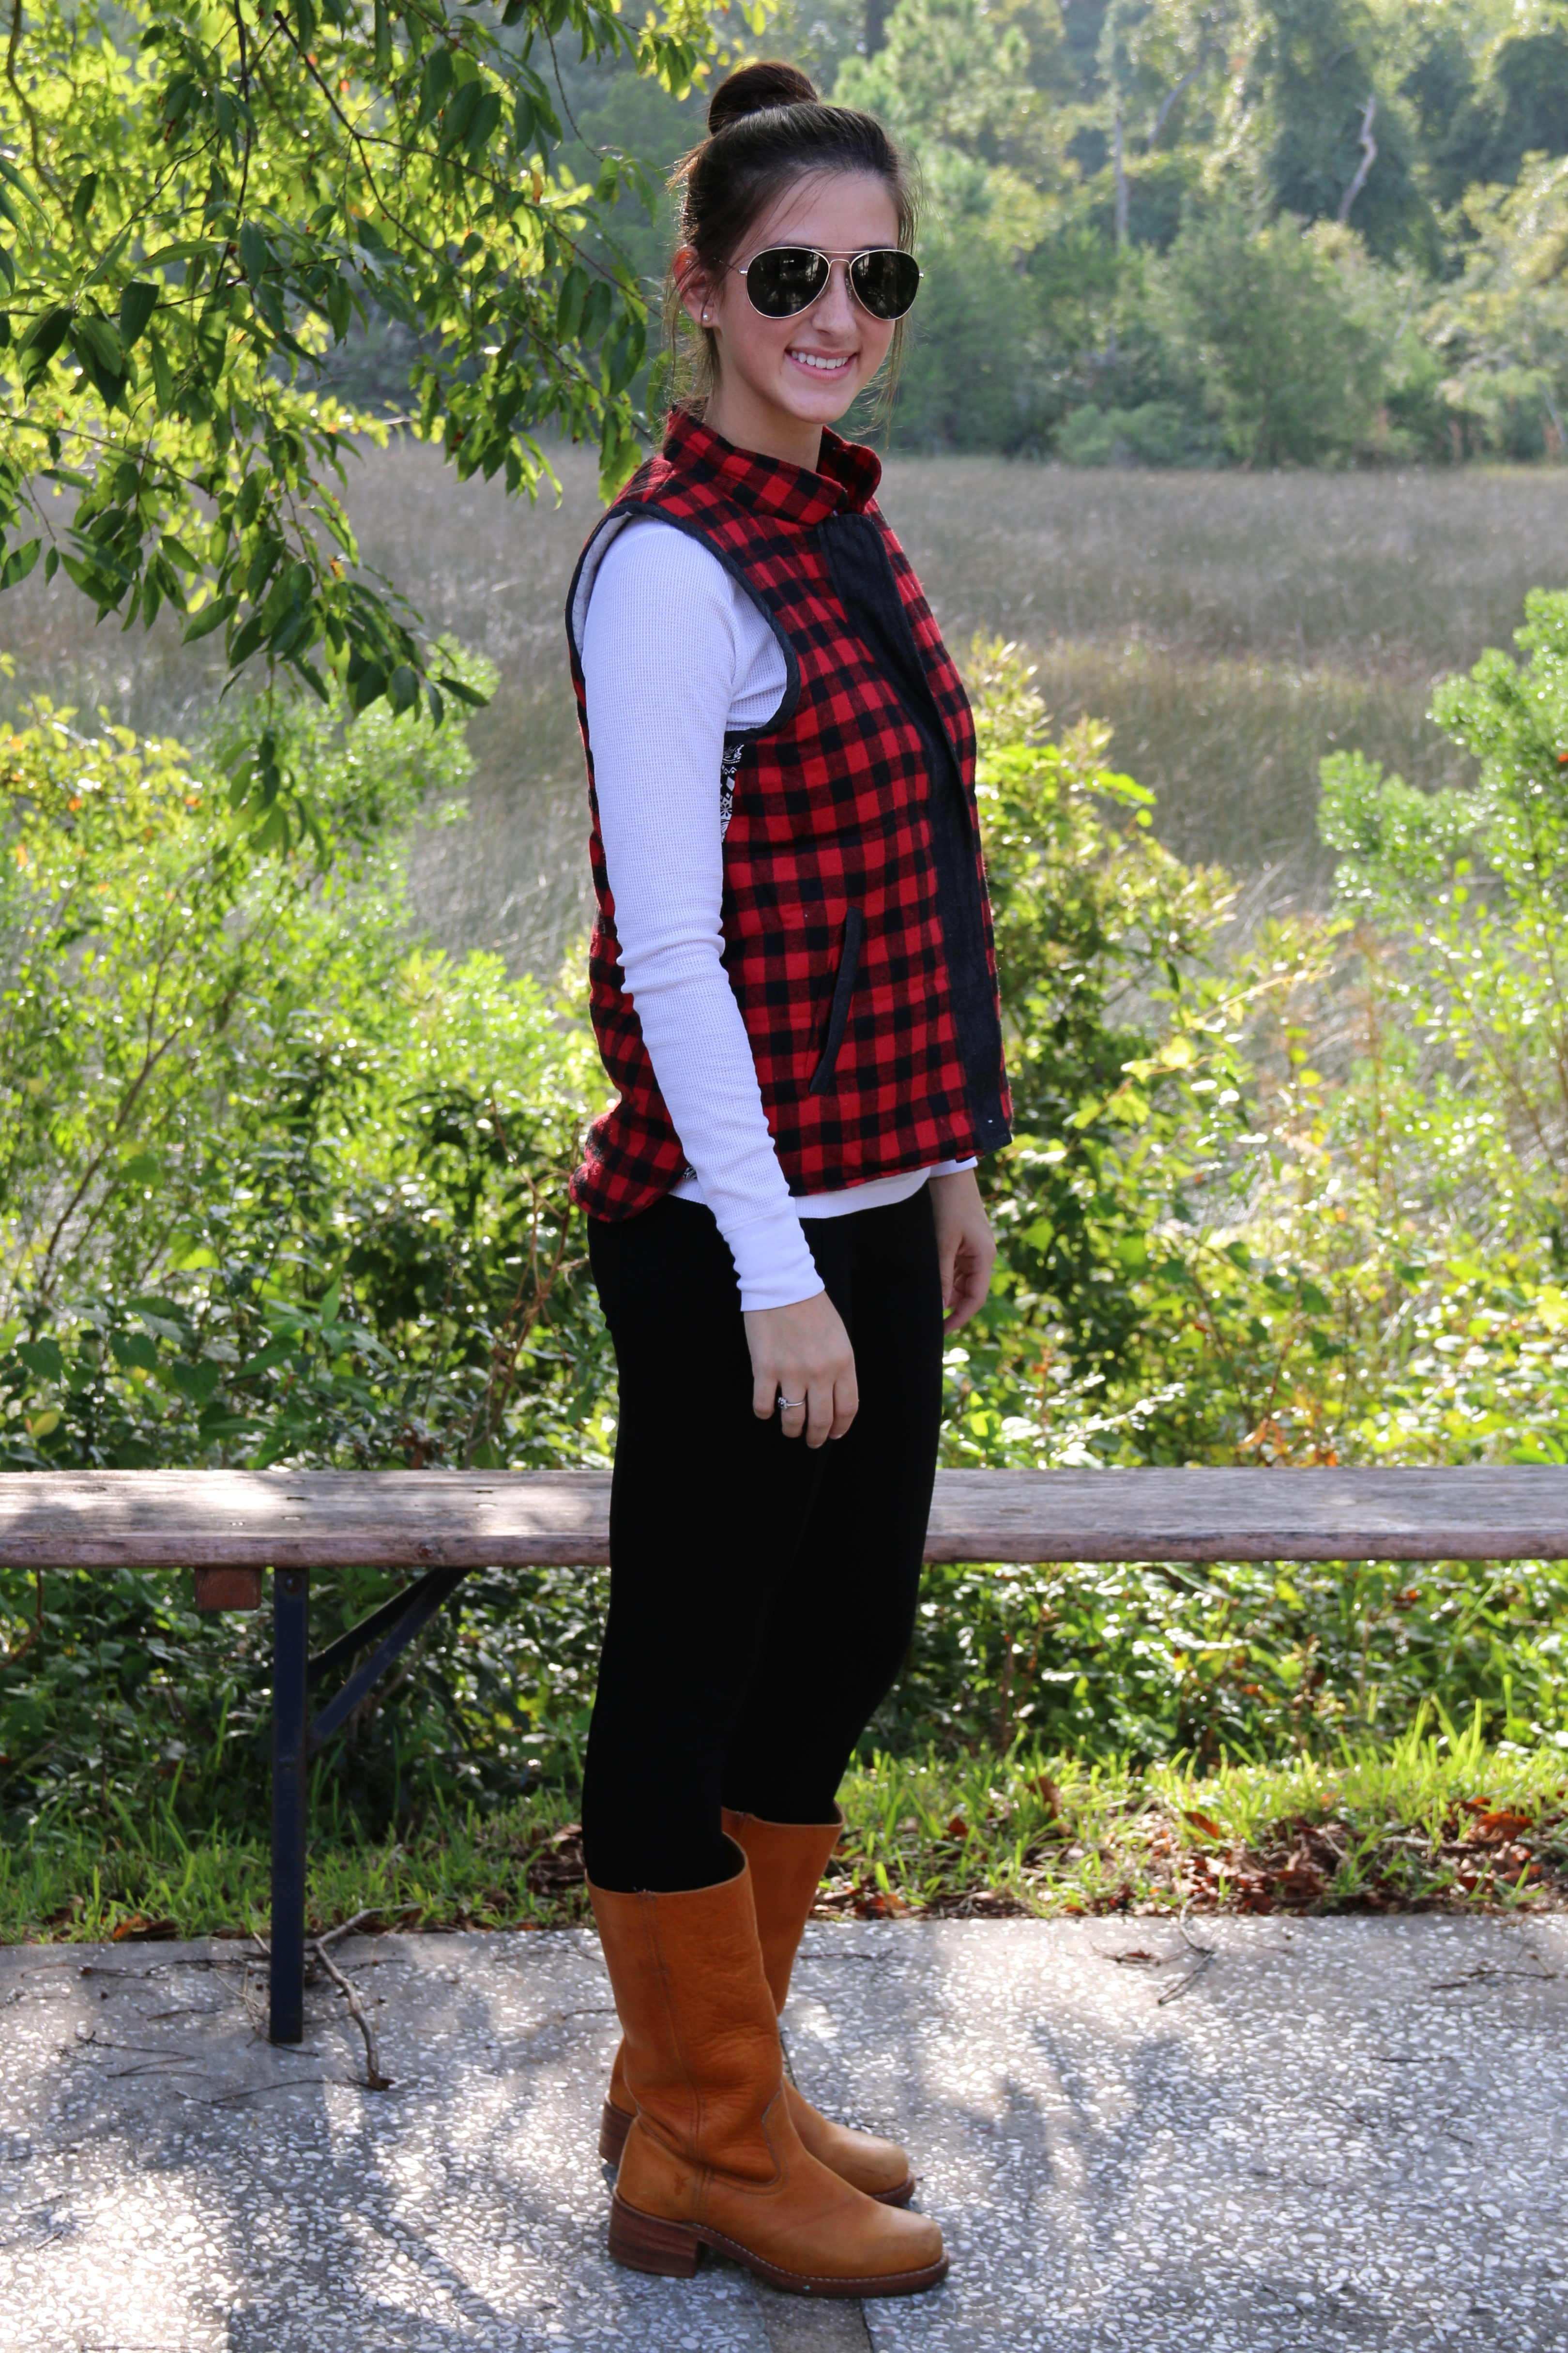 e8dfc21e55161 ... OOTD Wild Souls Red and Black Buffalo Plaid Flannel Puffer Vest